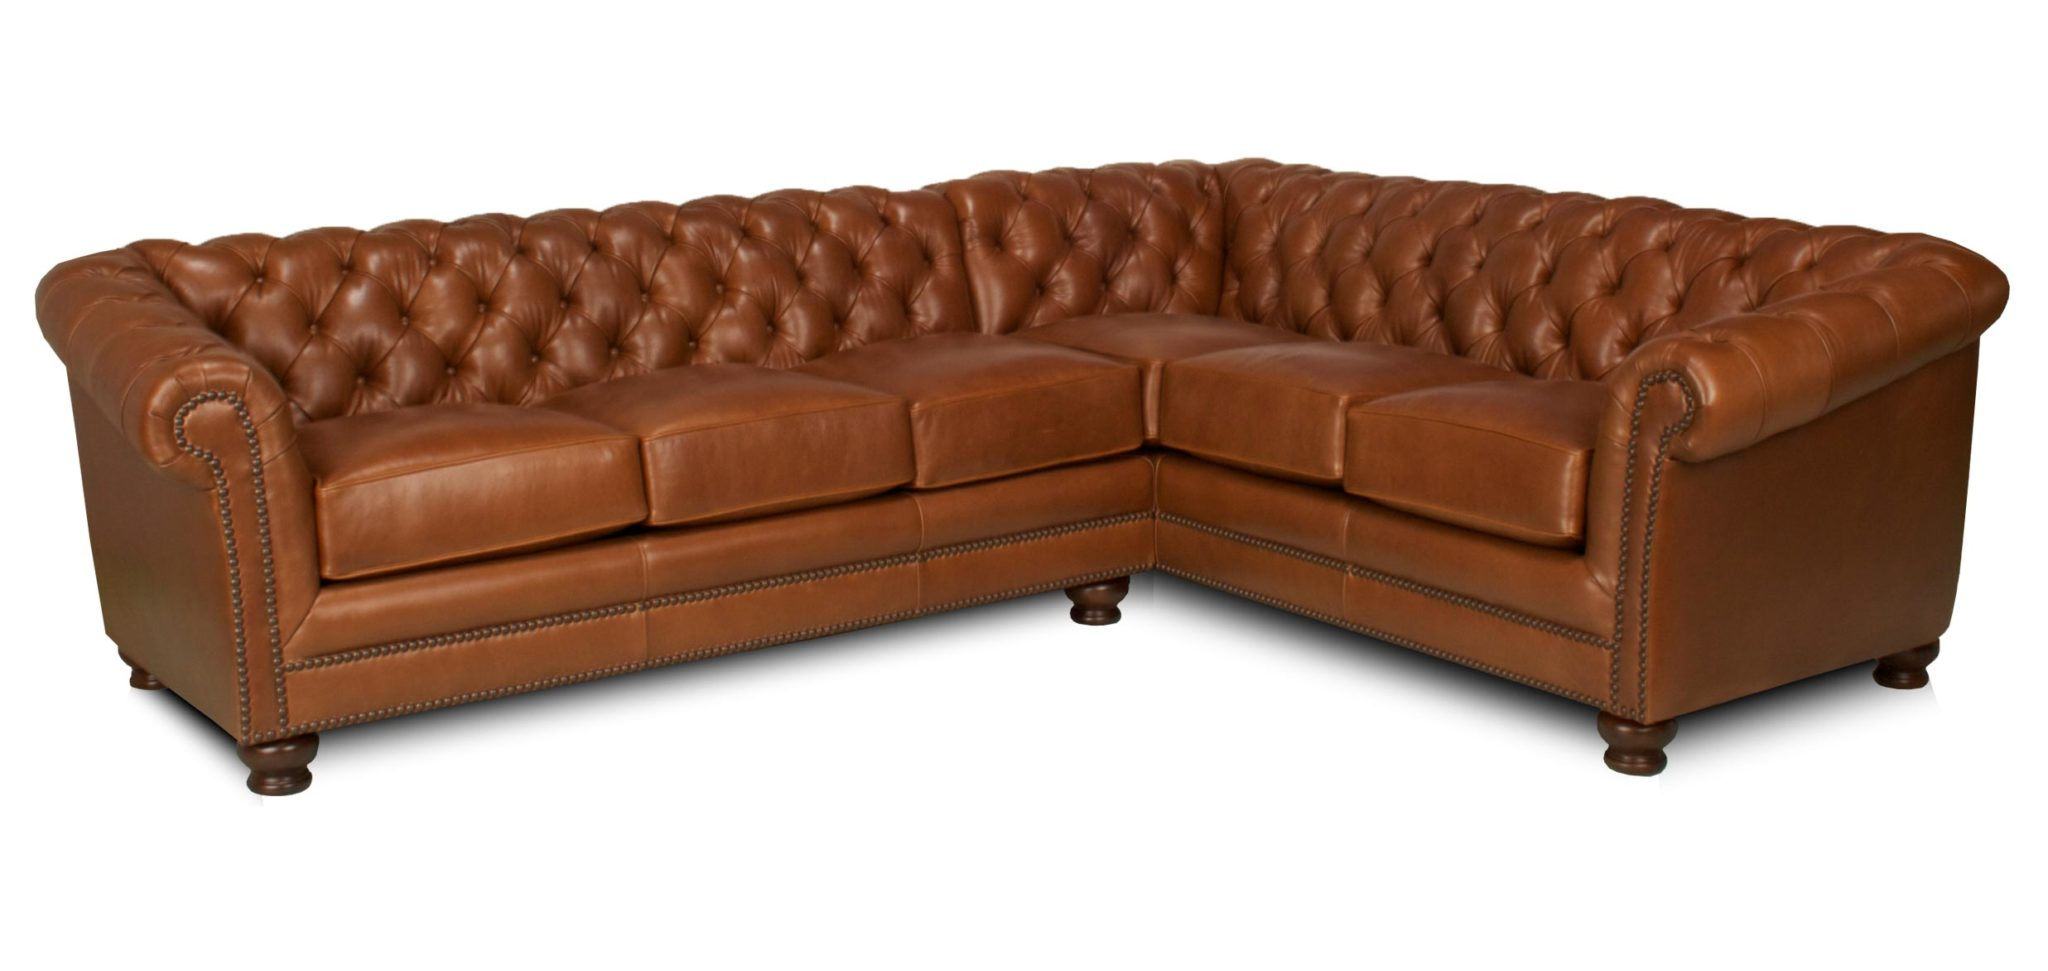 Chesterfield Leather Sectional : 9401 Chesterfield leather sectional from www.leathercreationsfurniture.com size 2473 x 1172 jpeg 146kB